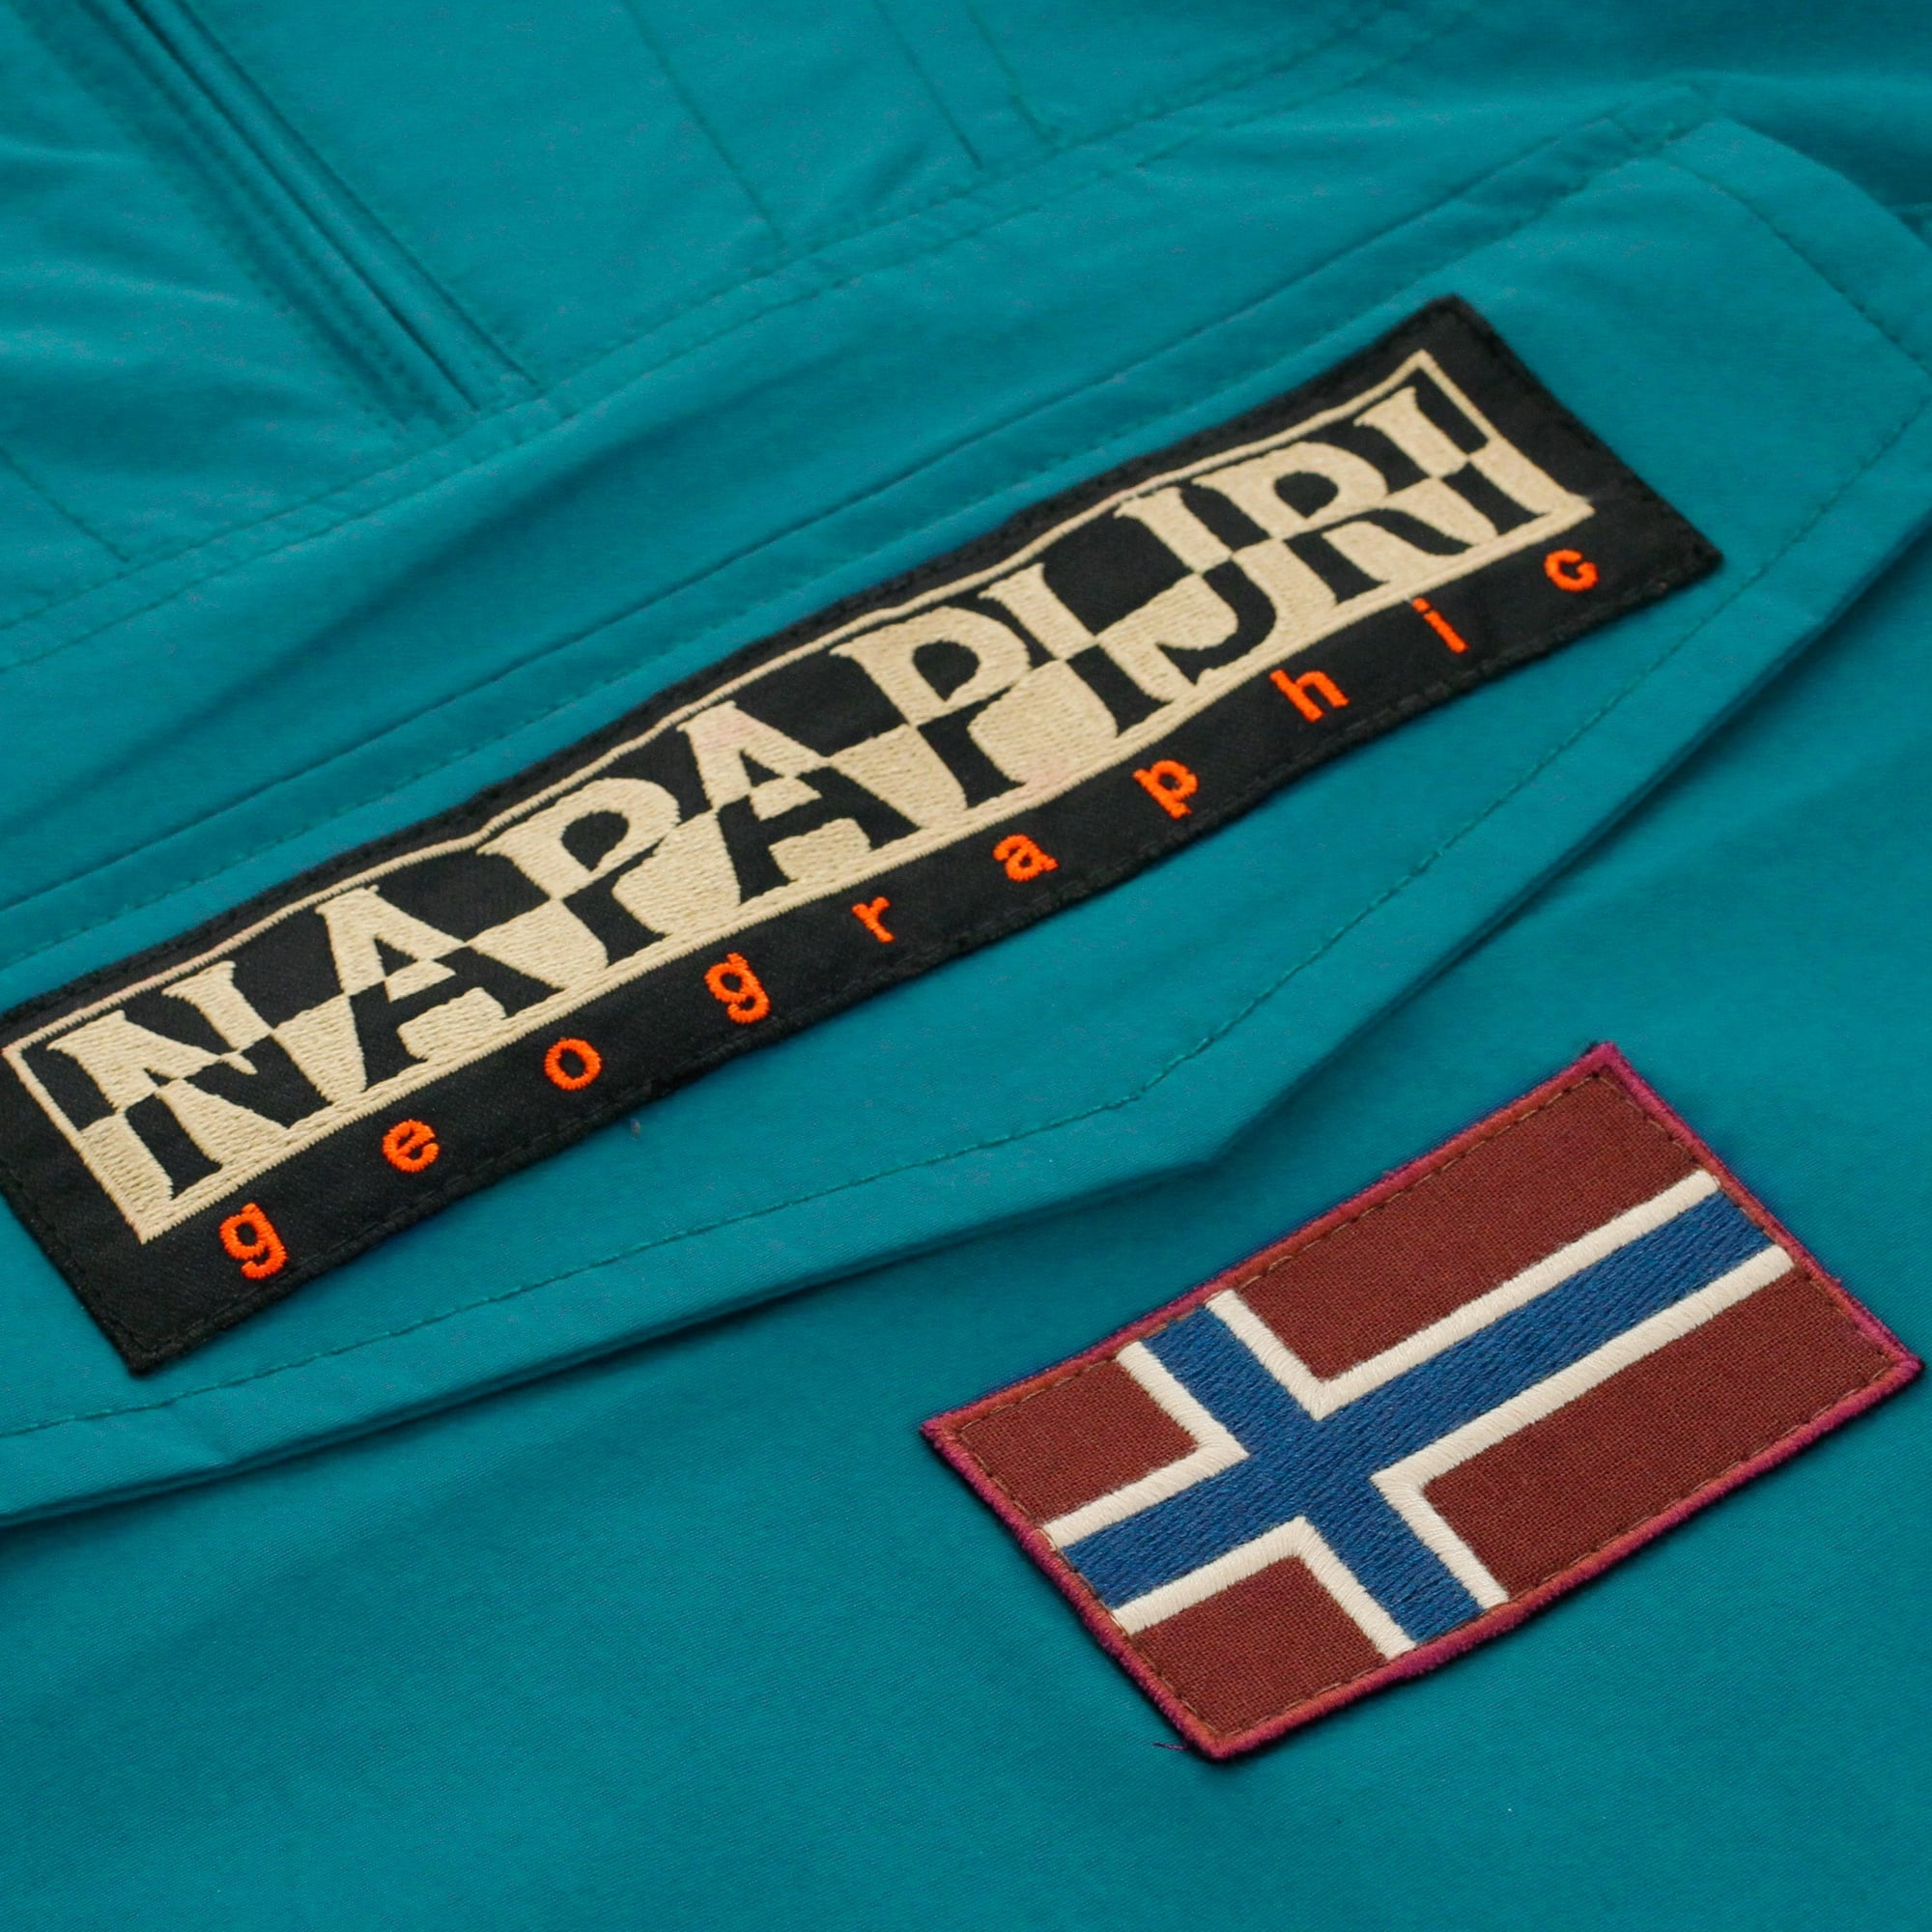 Napapijri Rainforest Summer Caribbean Blue Cagoule Jacket